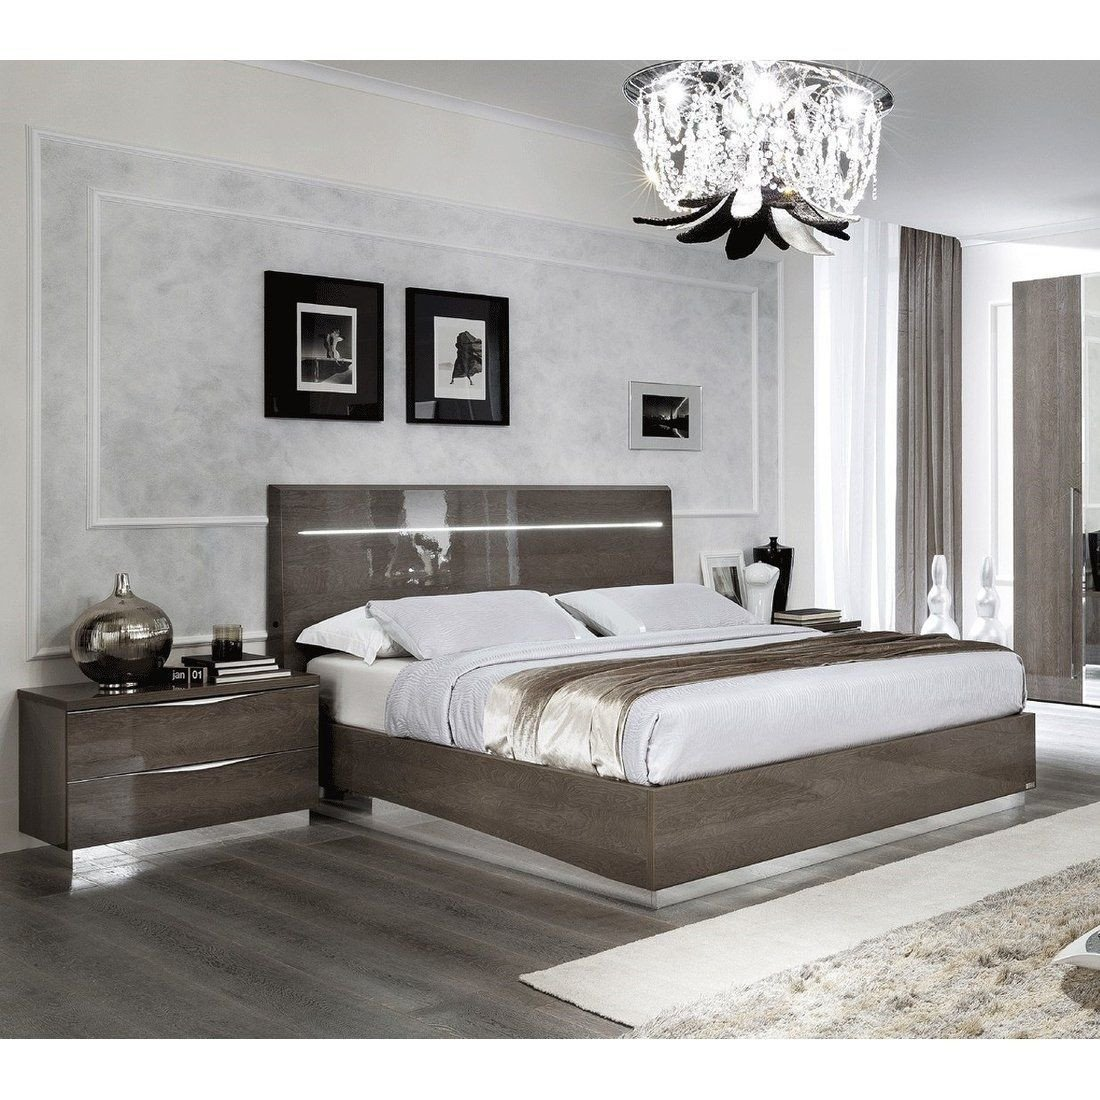 Silver Grey Bedroom Furniture Awesome Luca Home Led Silver Birch Queen Bed Brown